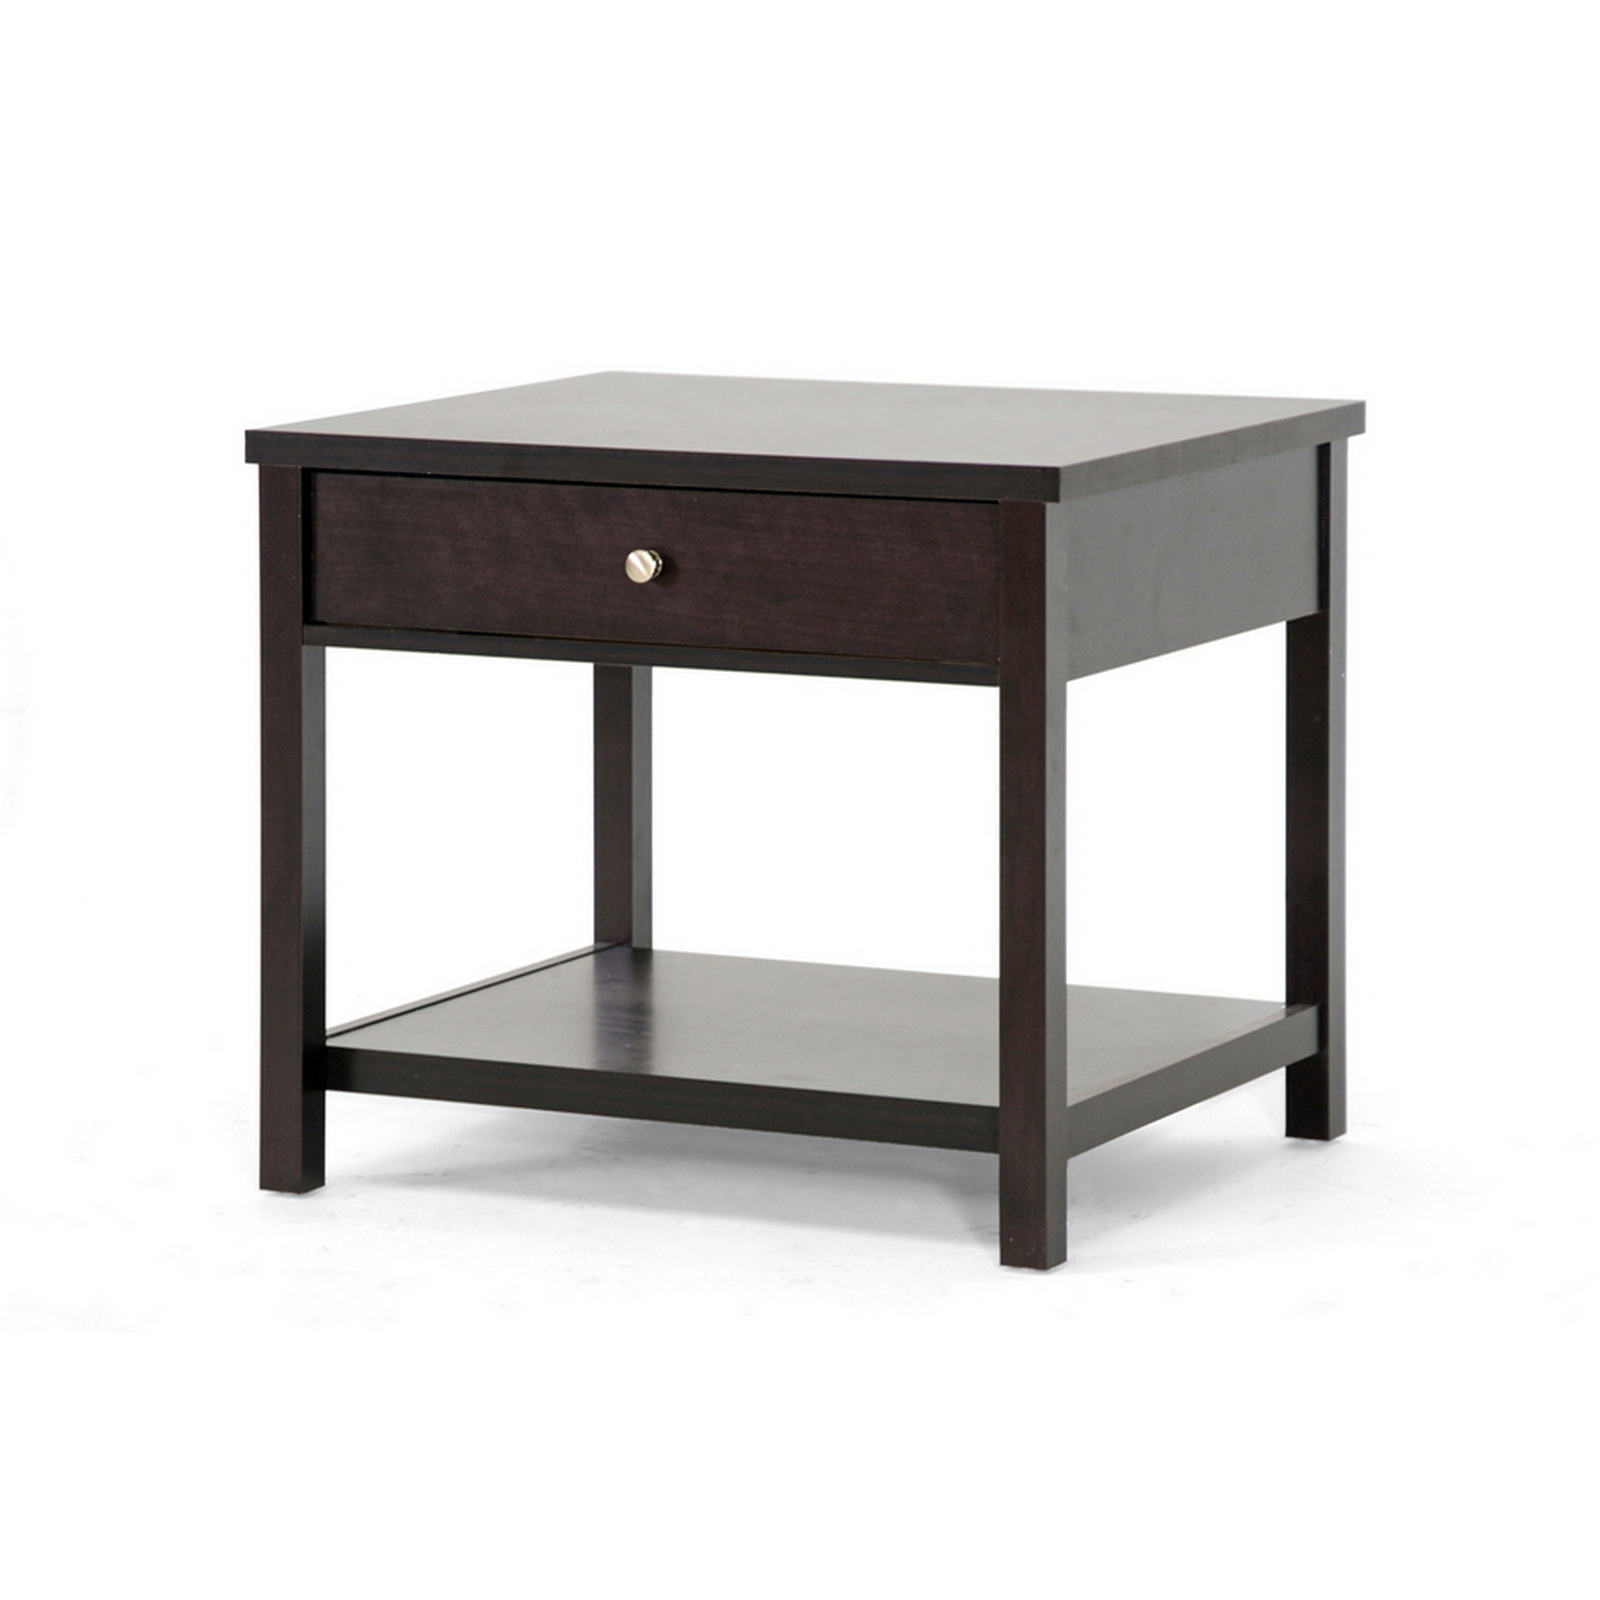 mom urban designs inch brown modern accent table and white nightstand small outdoor teak side butterfly leaf world market dining chairs floor mirror dale tiffany wisteria lamp